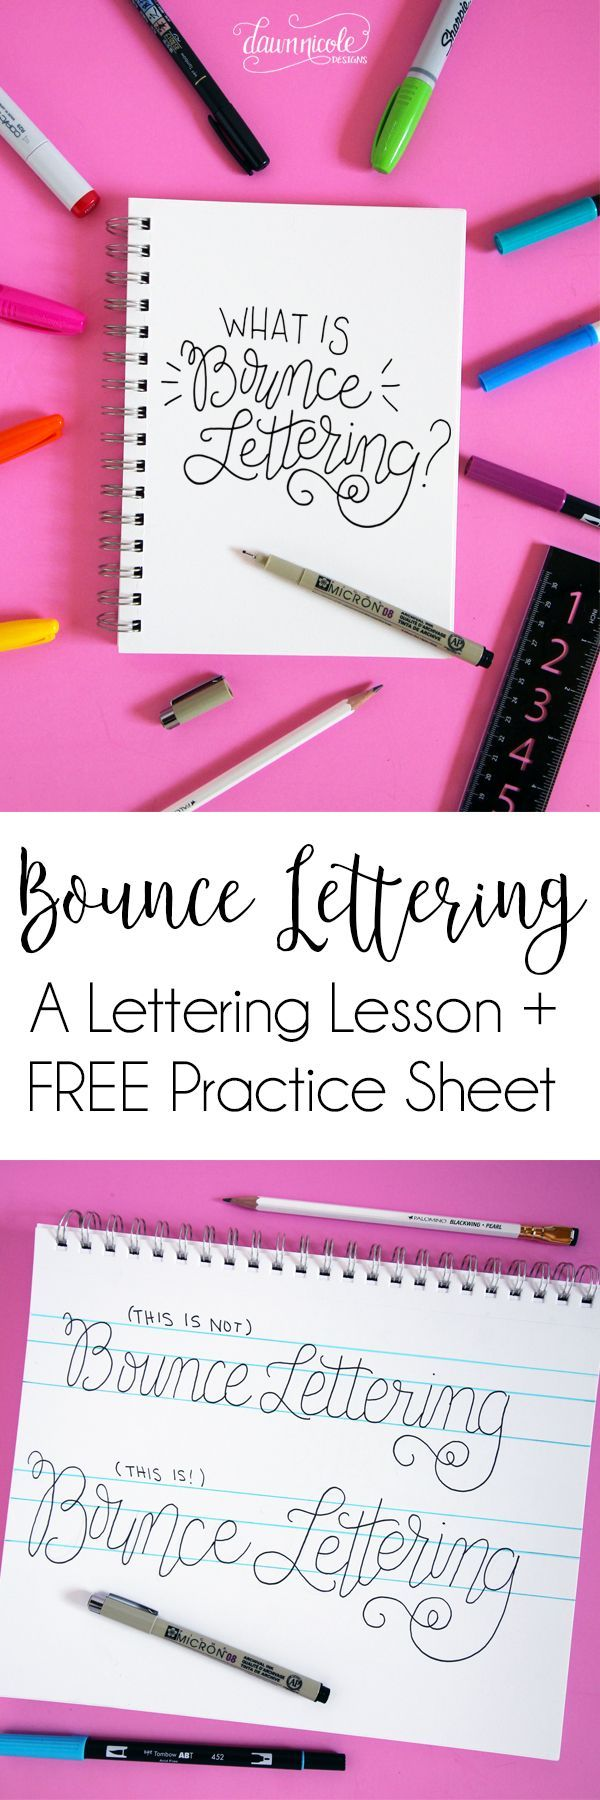 How to Do Bounce Lettering   by Dawn Nicole   Bloglovin'